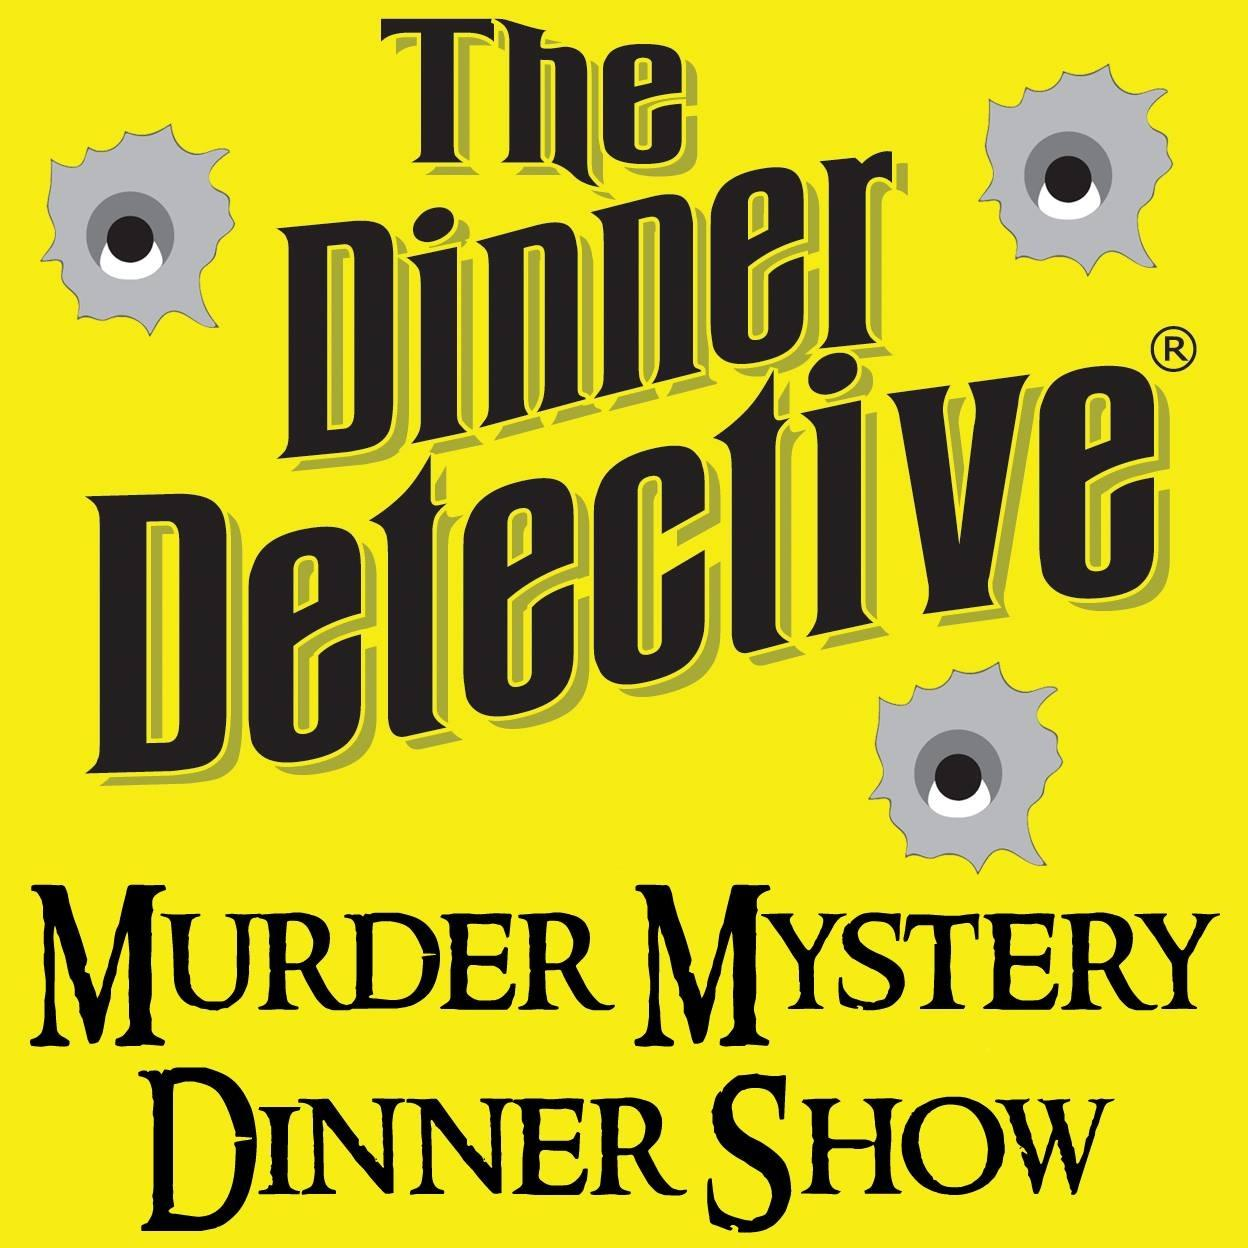 Dinner Detective Interactive Murder Mystery Show Pittsburgh, PA